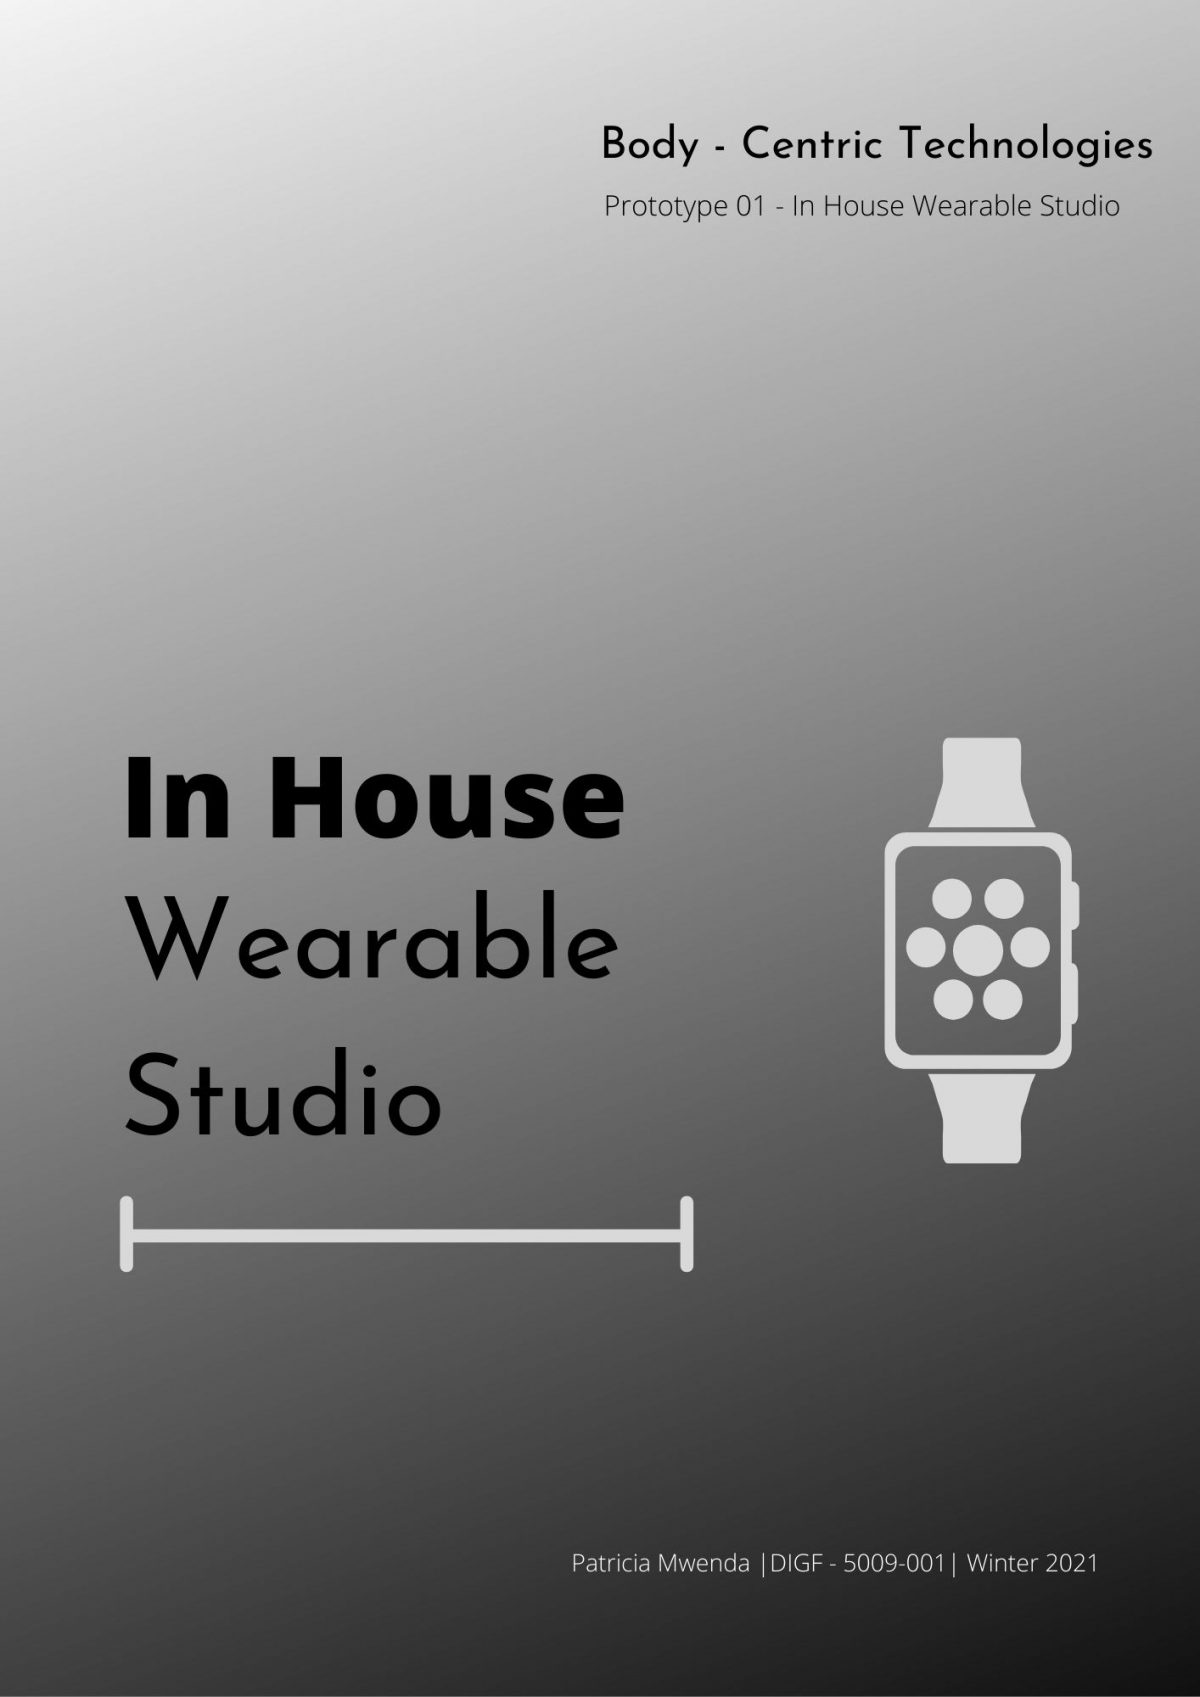 In House Wearable Studio by Patricia Mwenda